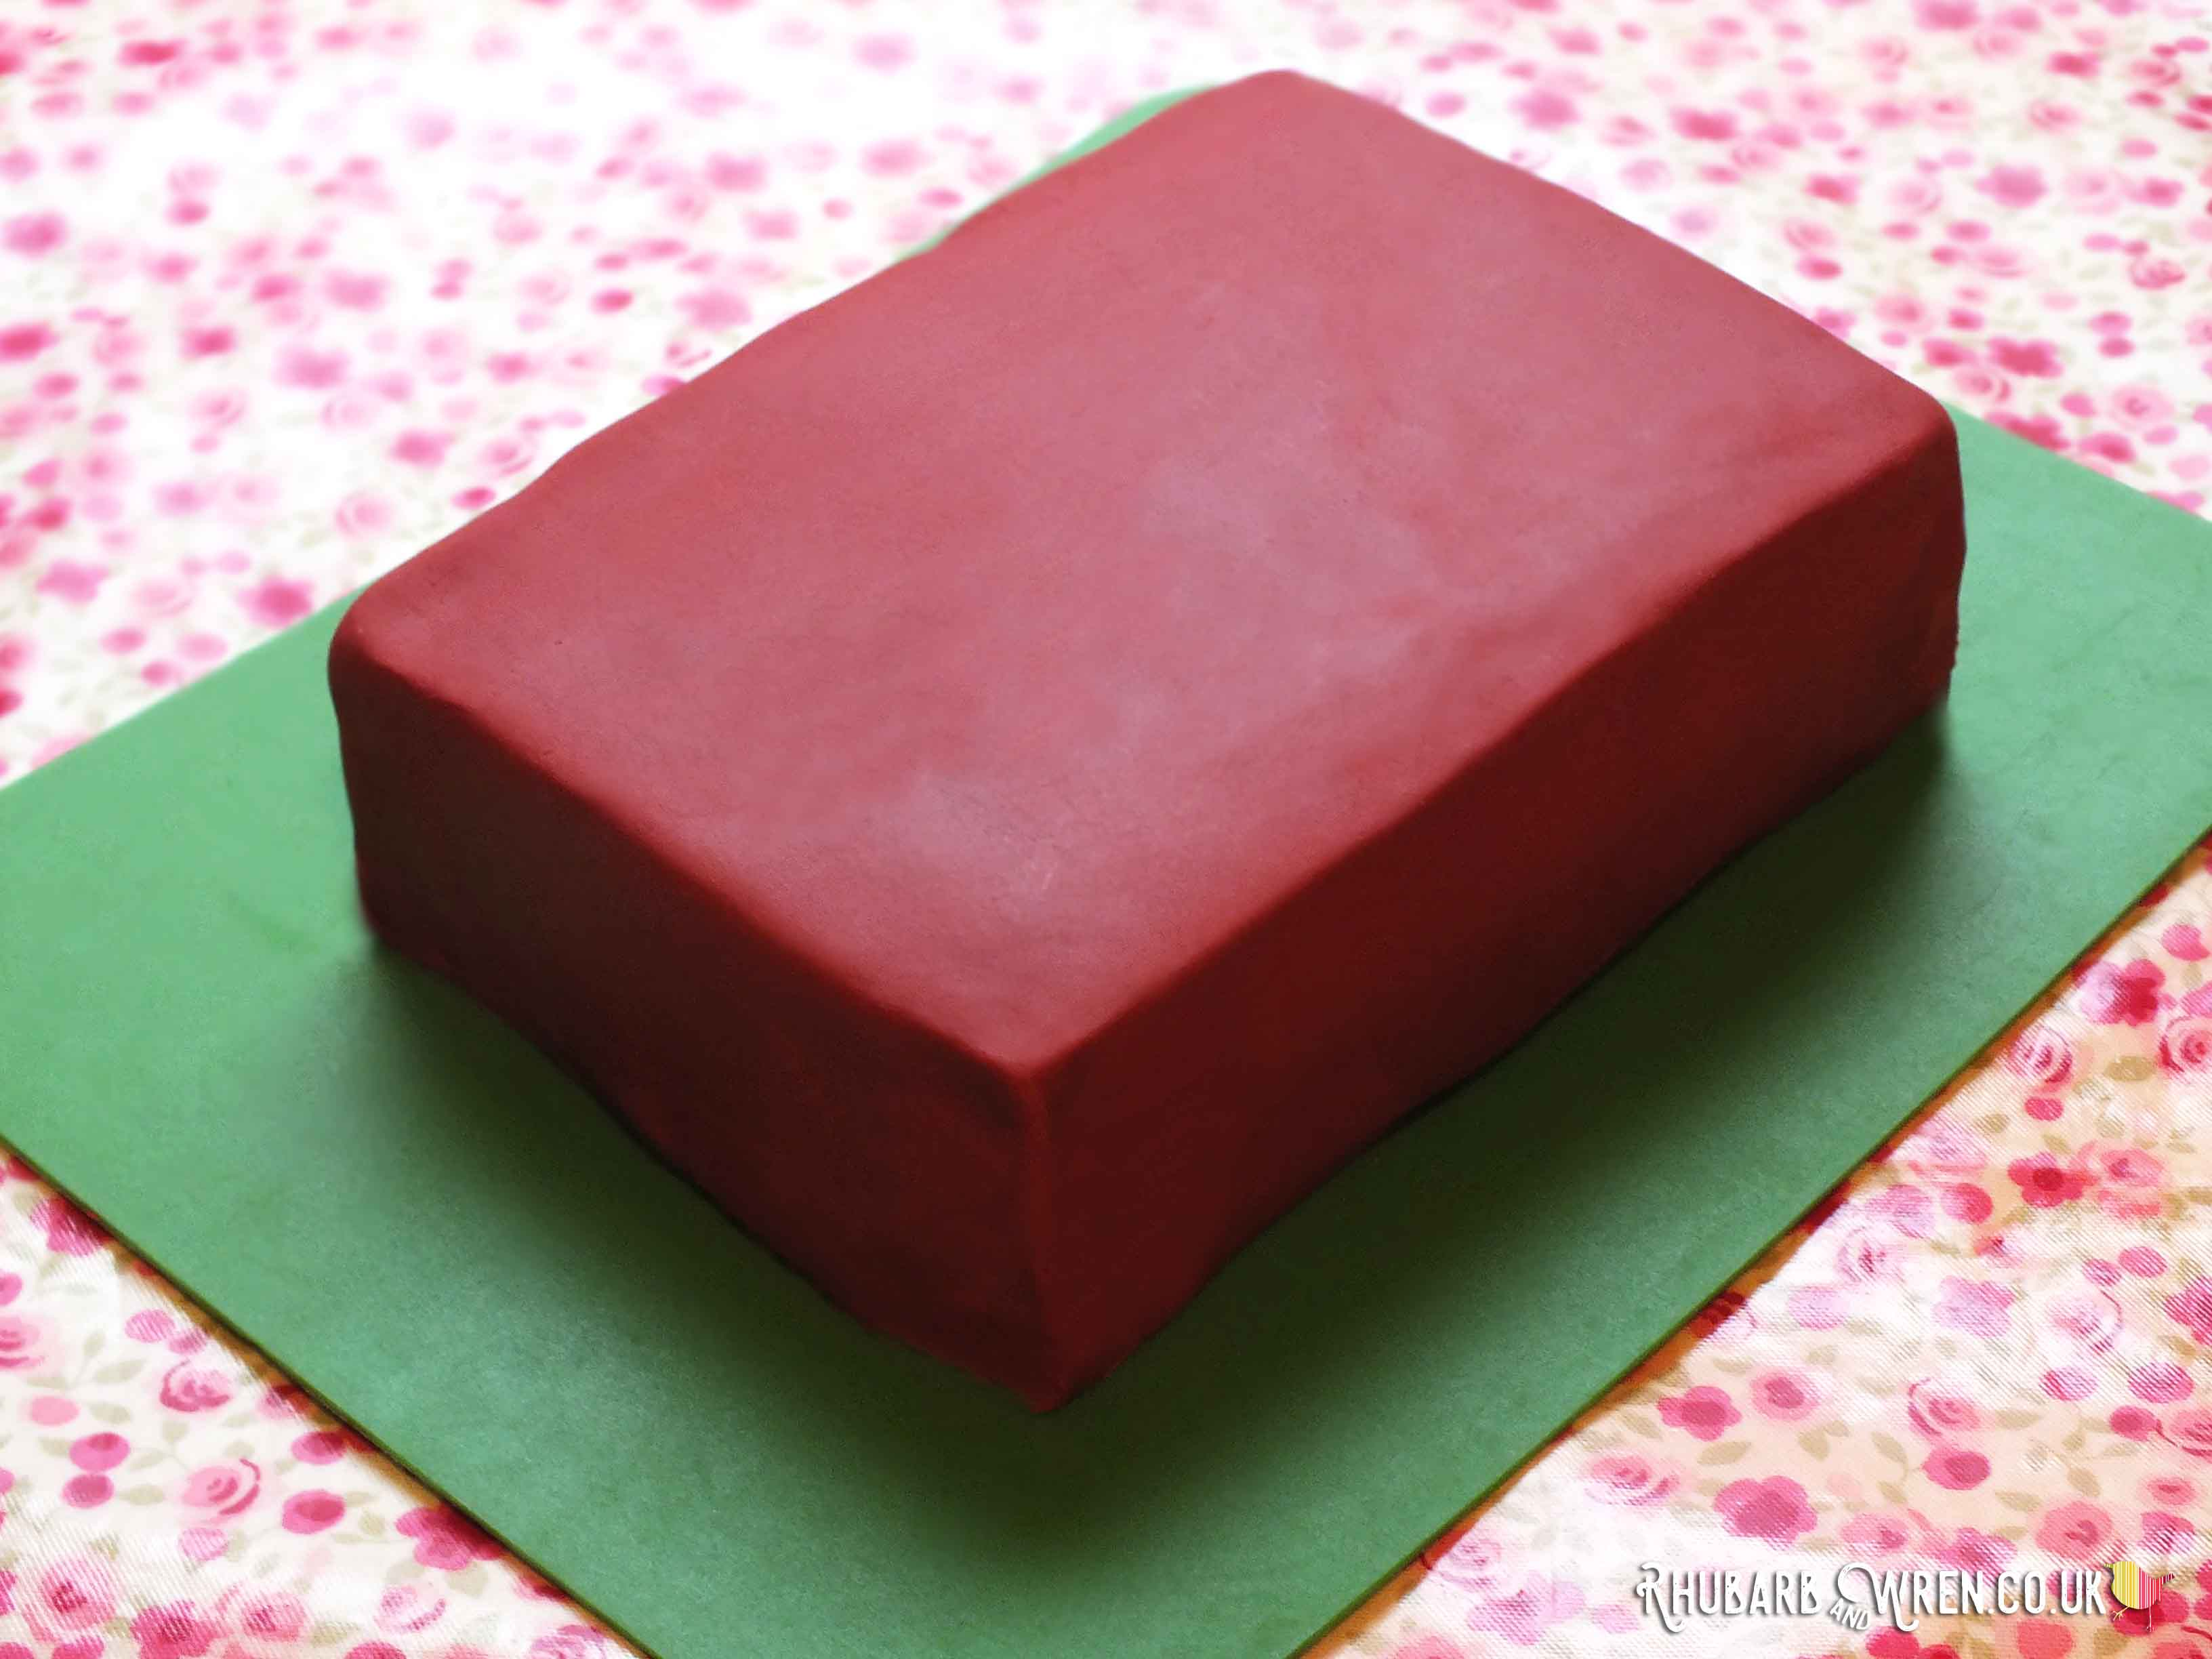 Rectangular cake covered in red fondant icing